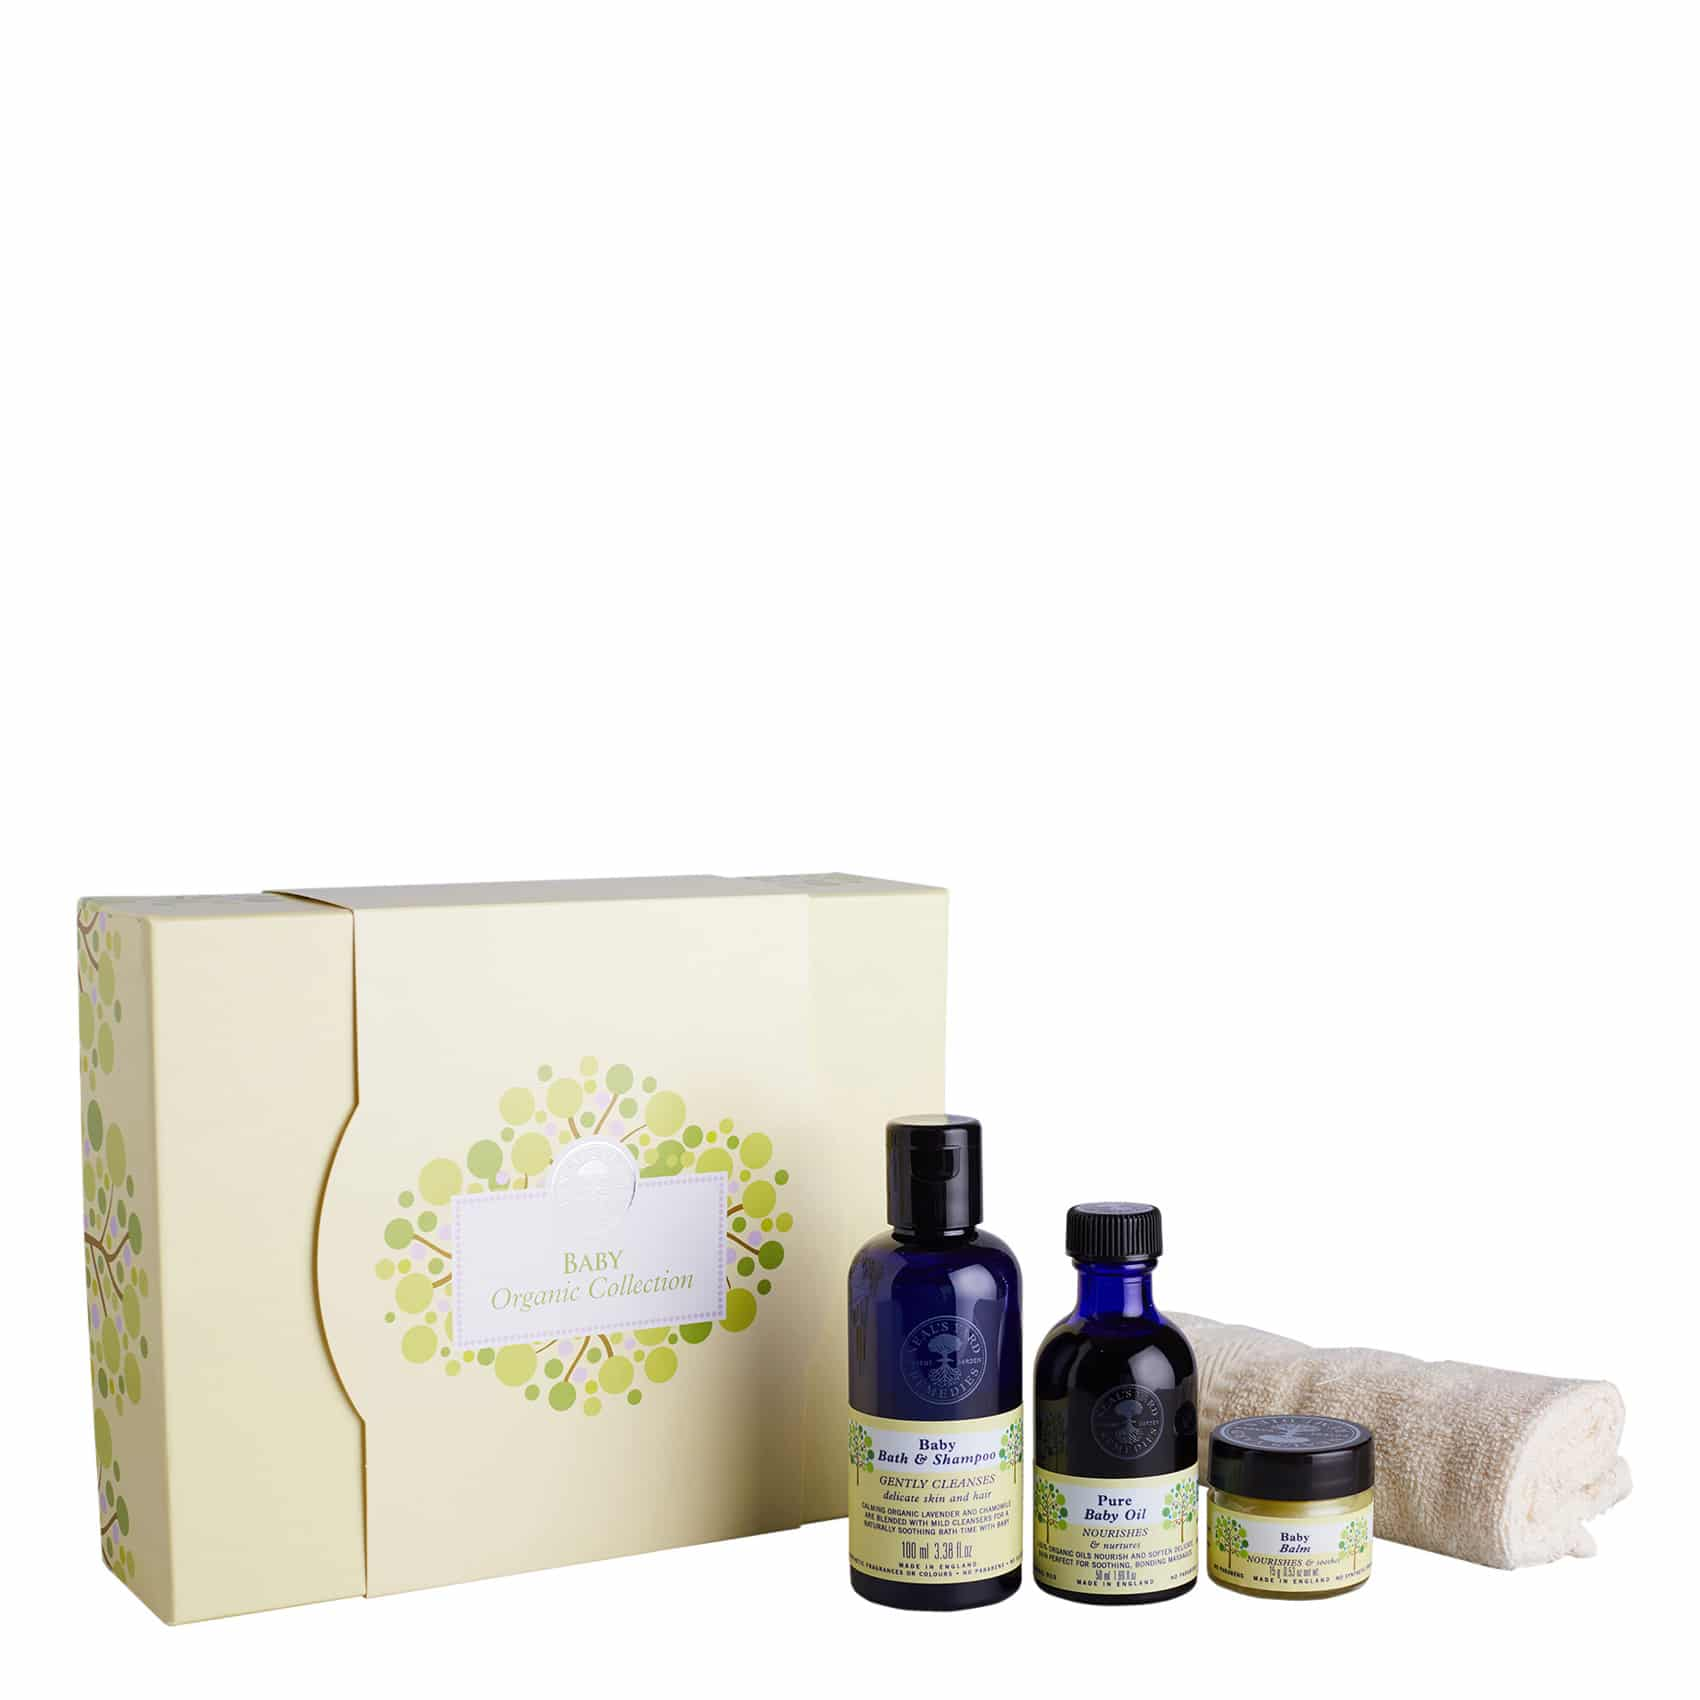 Neal's Yard Remedies Baby Organic Collection Gift Box